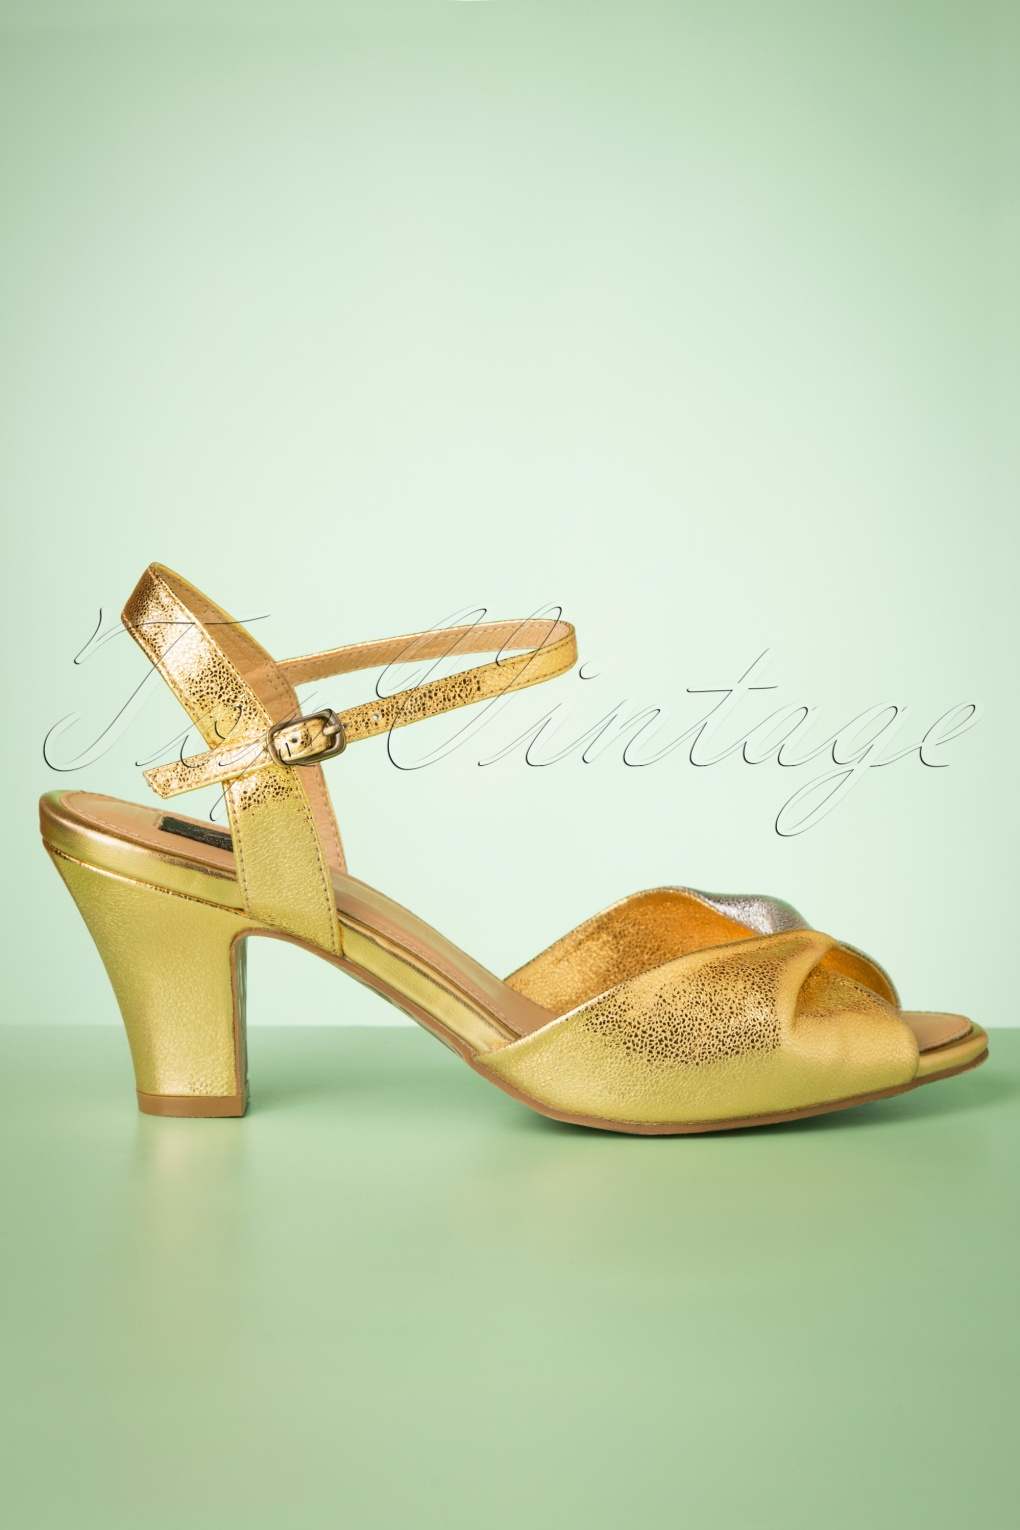 1950s Style Shoes | Heels, Flats, Saddle Shoes 50s Ava Its A Two Tone Thing Sandals in Metallic Gold and Silver £66.80 AT vintagedancer.com